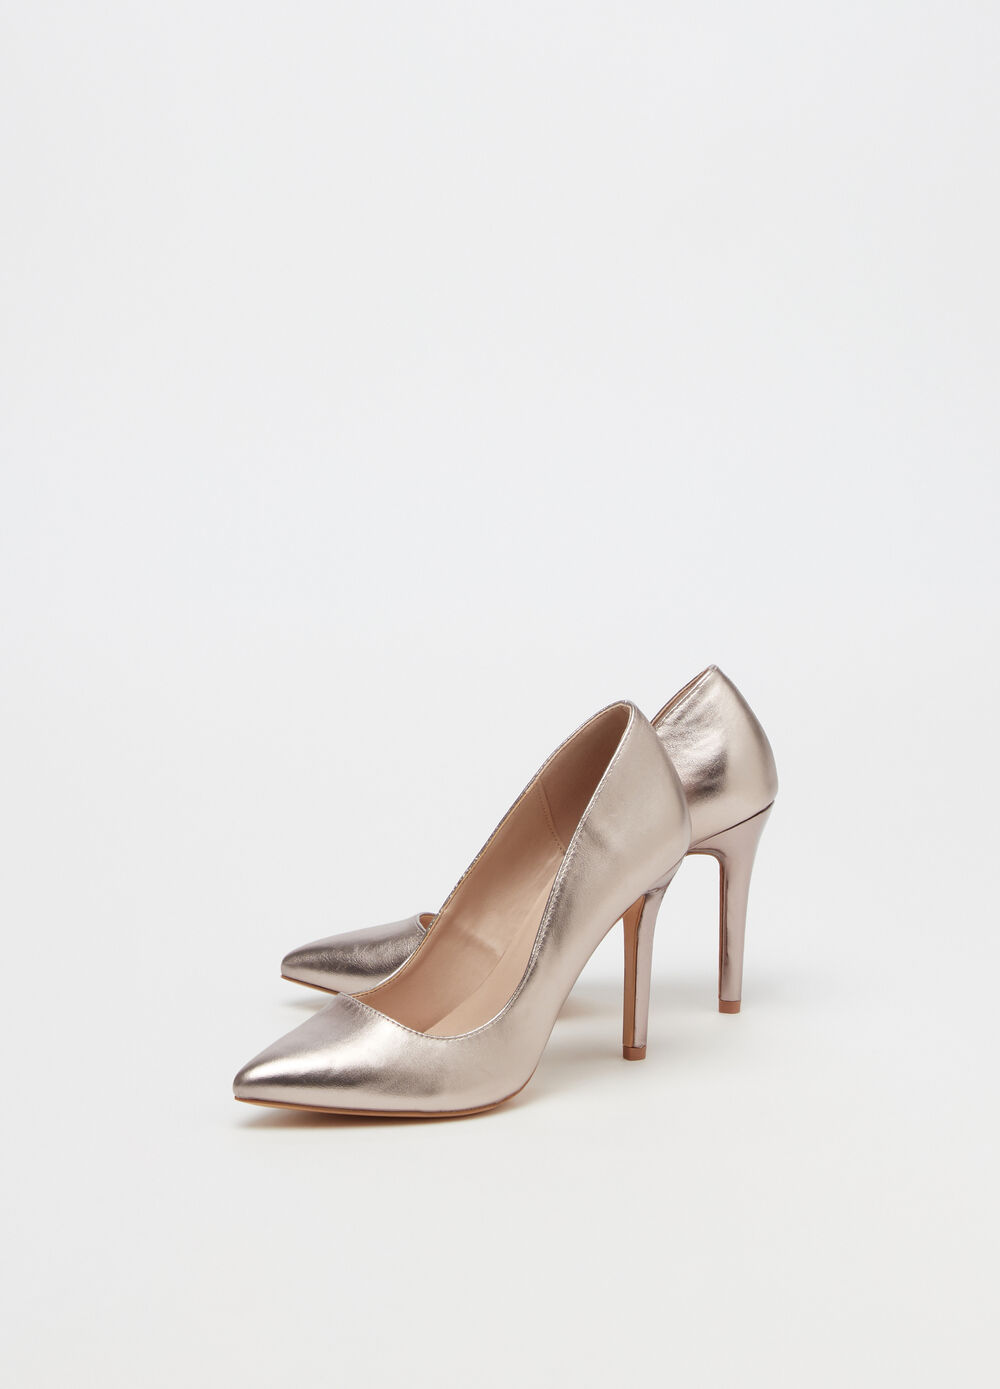 Metallic court shoe with stiletto heel